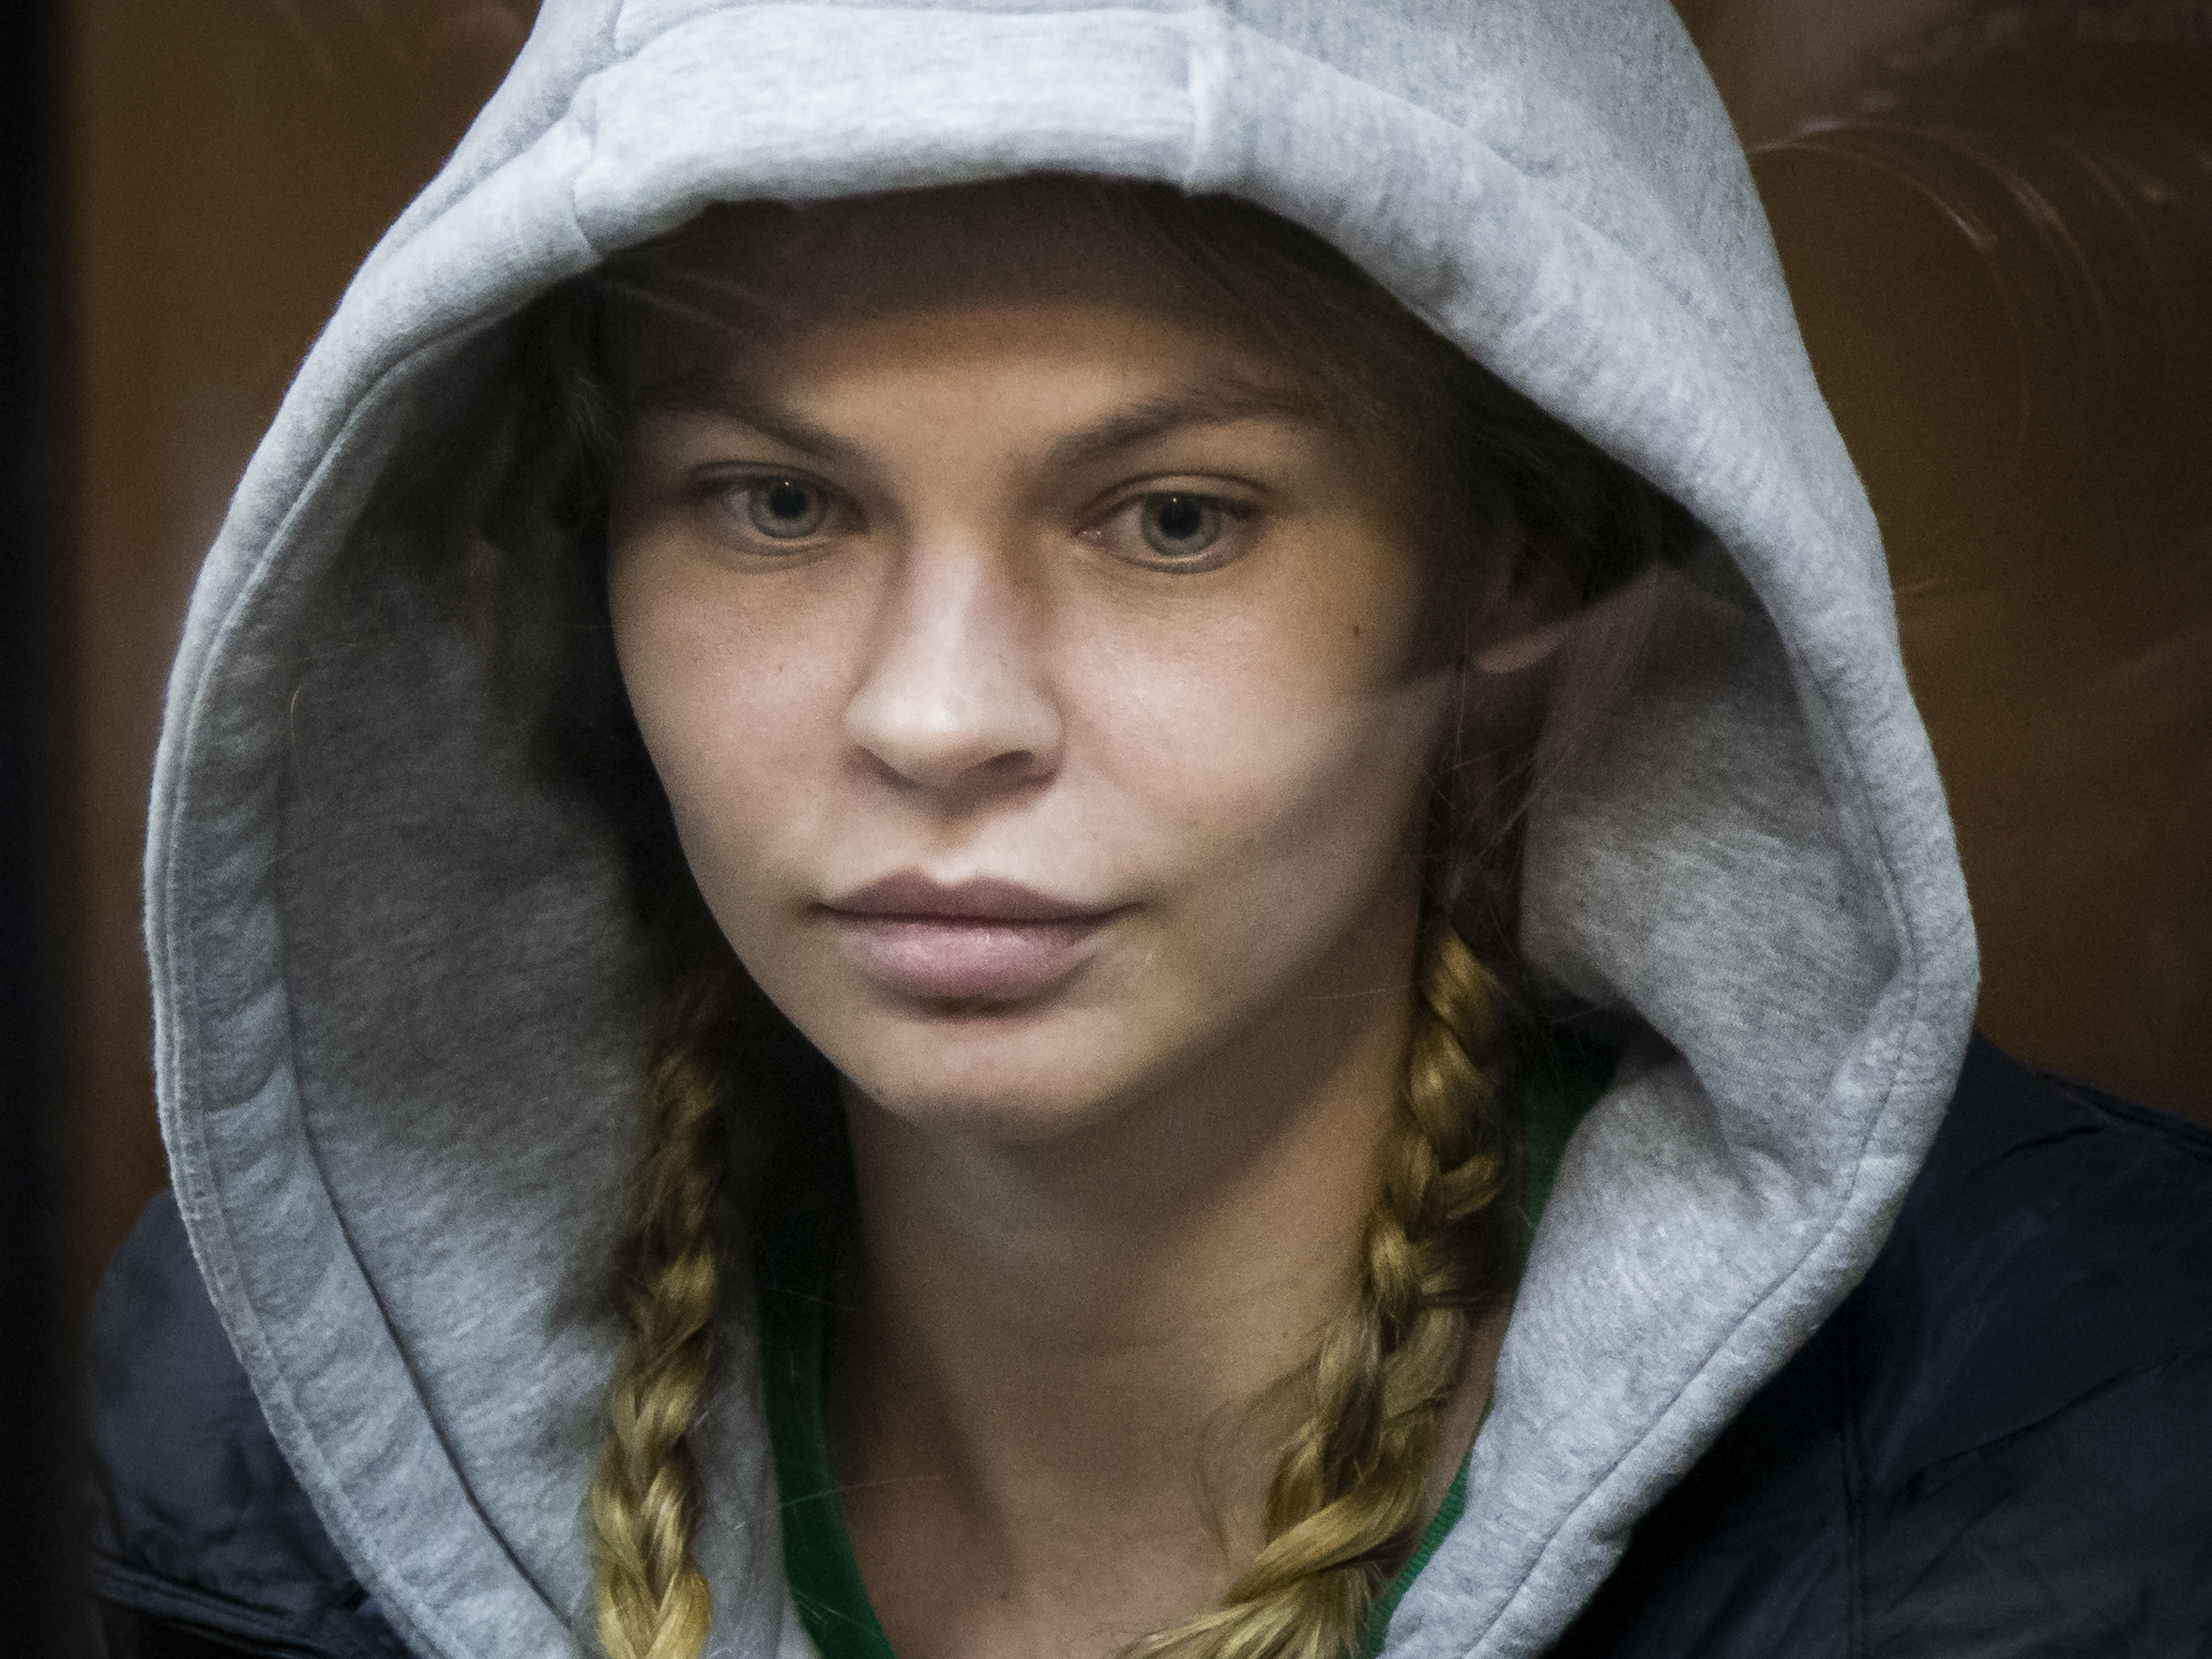 Anastasia Vashukevich, also known on social media as Nastya Rybka, sits in a cage in the court room in Moscow, Russia, Saturday, Jan. 19, 2019. A Belarusian model who claimed last year that she had evidence of Russian interference in the election of Donald Trump as U.S. president was arrested immediately upon her arrival in Moscow on Thursday following deportation from Thailand. (AP Photo/Alexander Zemlianichenko)